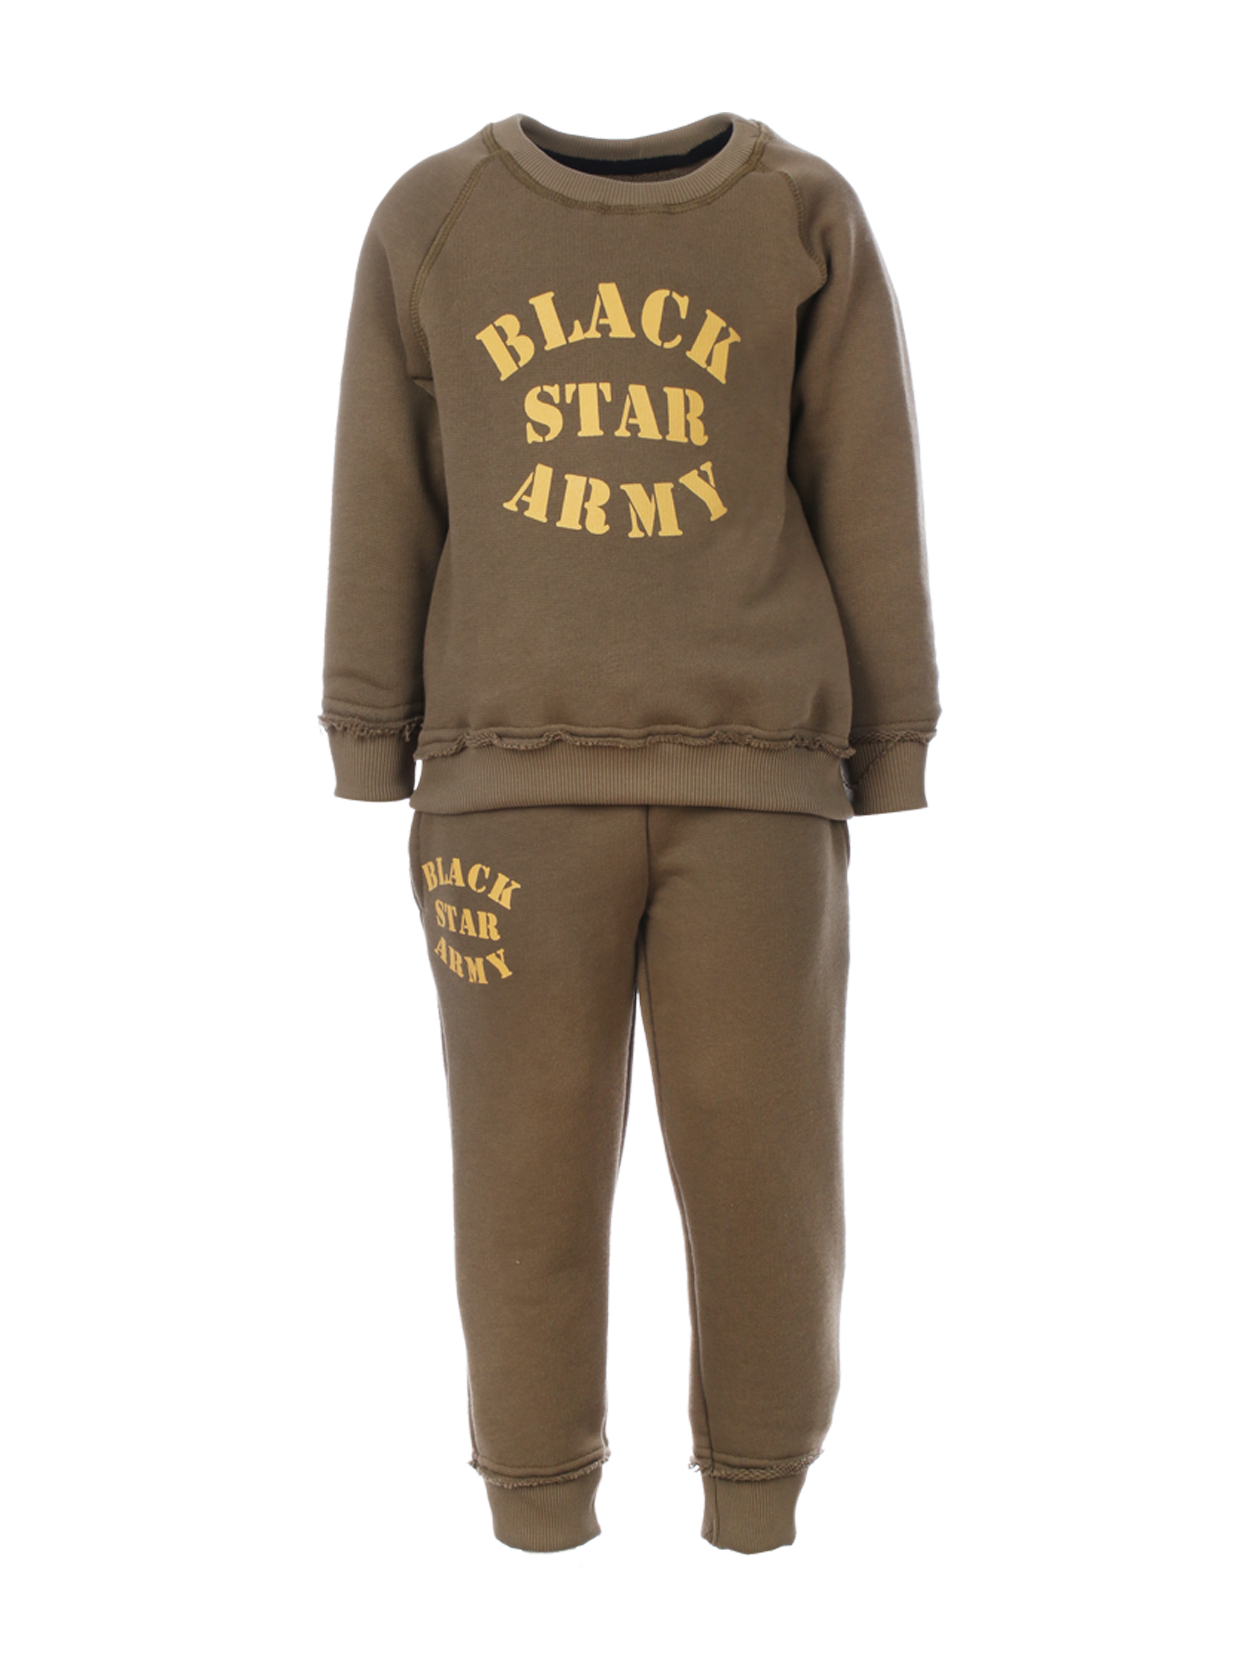 Kids sweatsuit Kids Black Star Army<br><br>size: 5-6 years<br>color: Khaki<br>gender: unisex